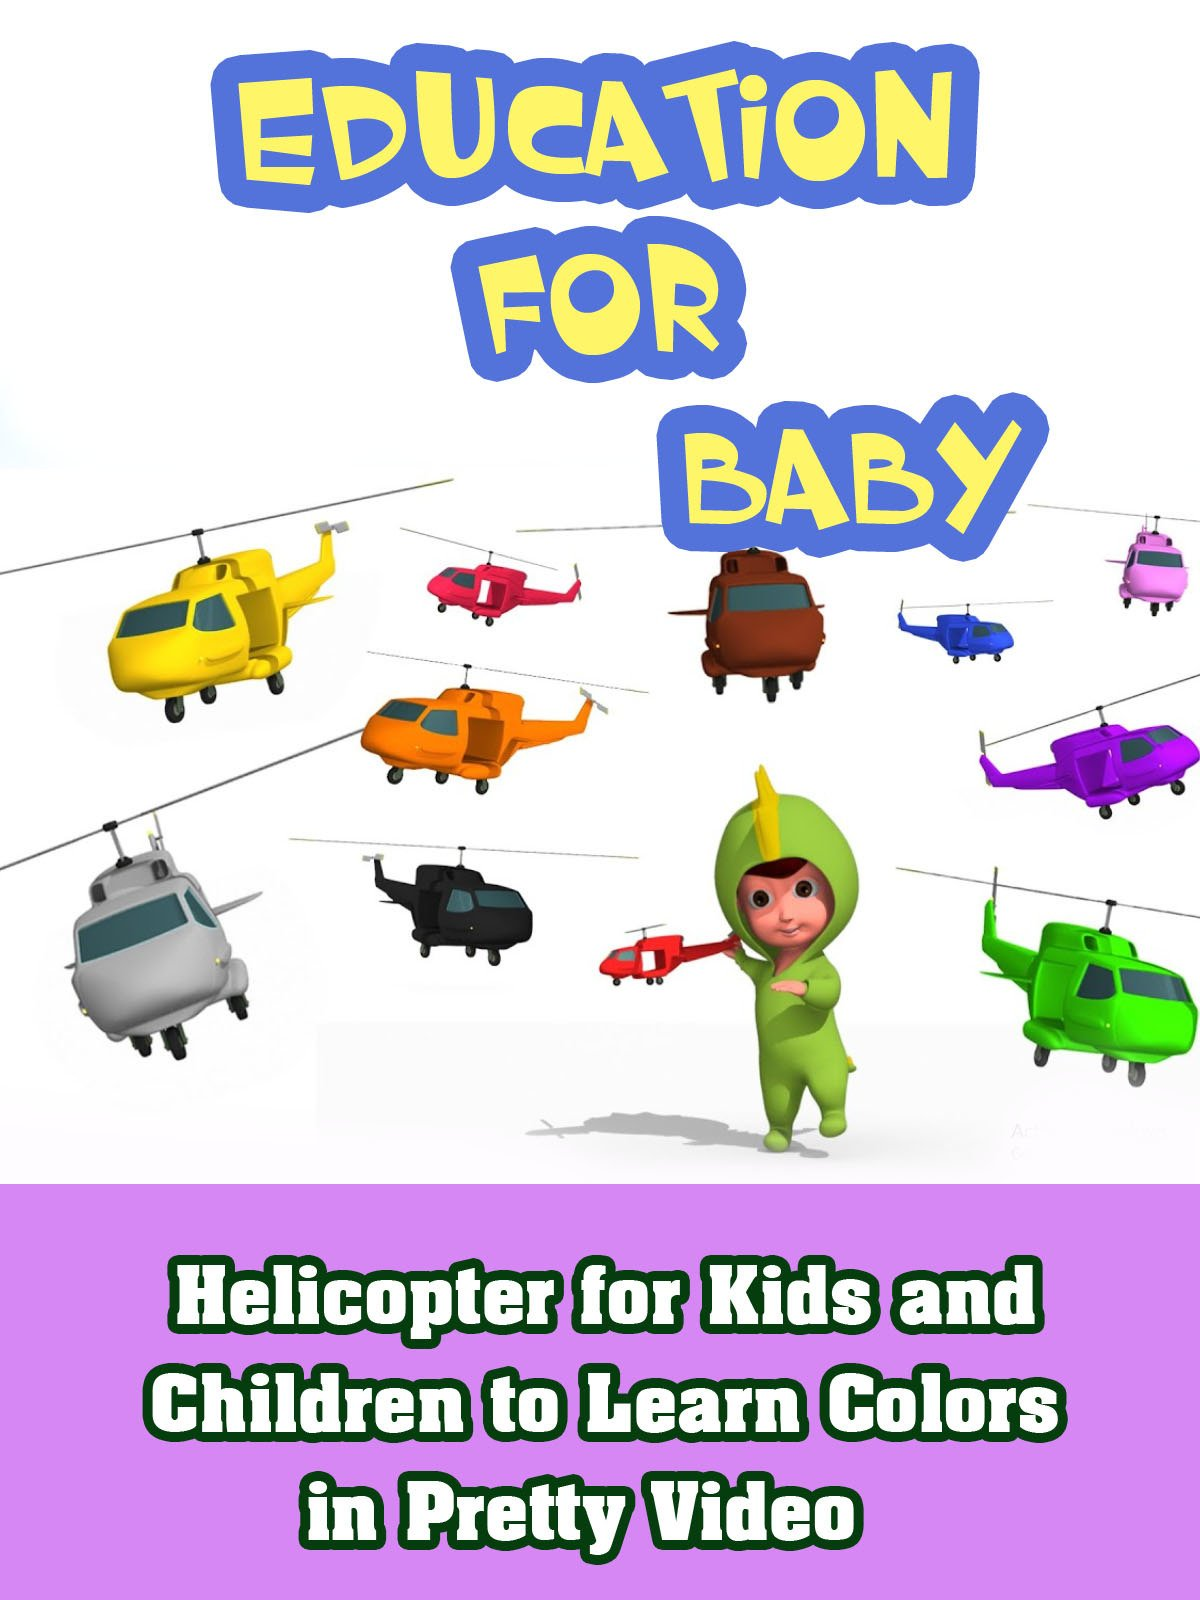 Helicopter For Kids And Children To Learn Colors In Pretty